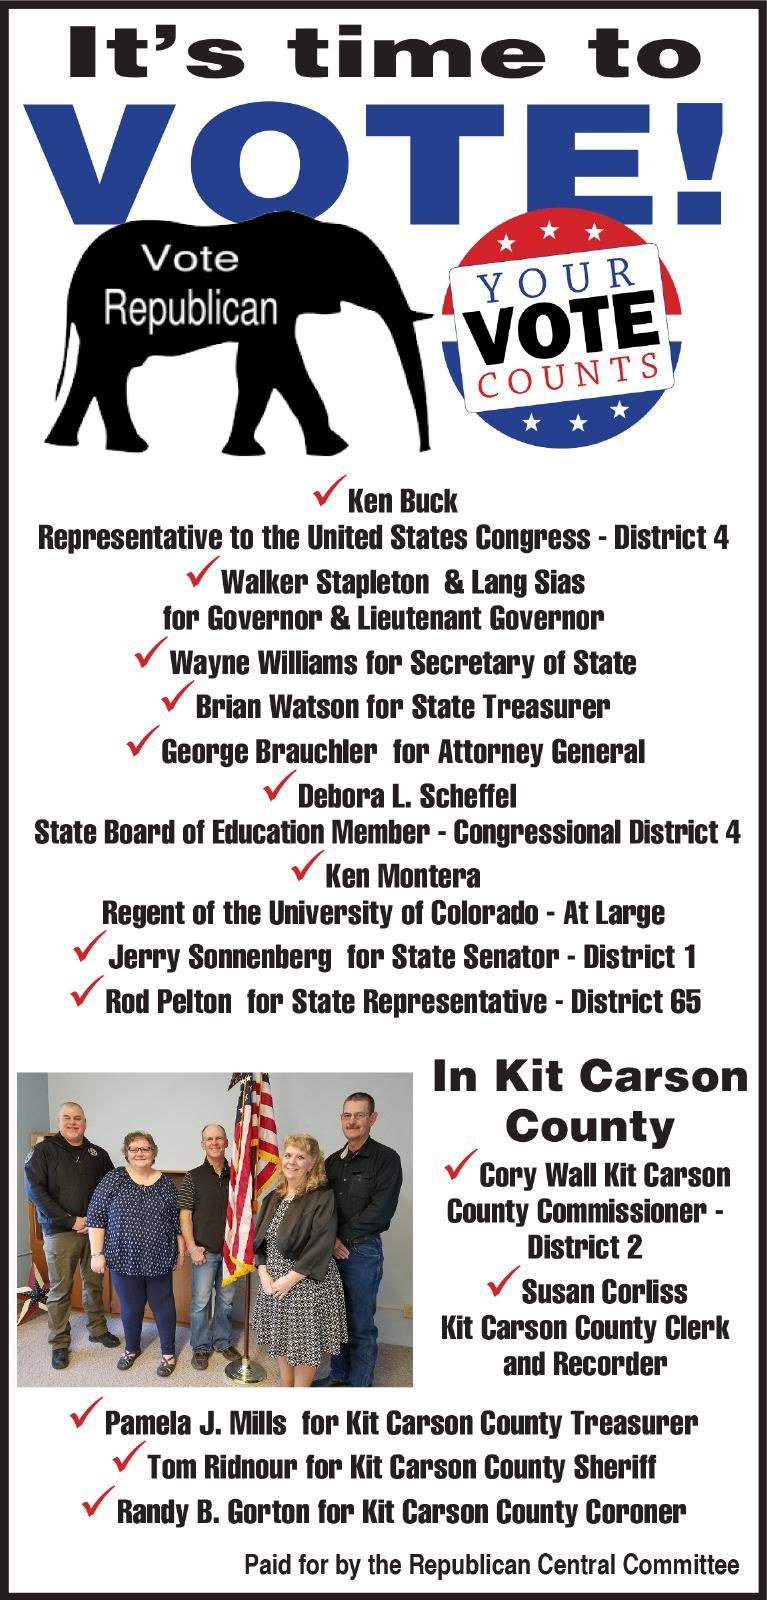 It's Time to Vote - Kit Carson County Republic Committee